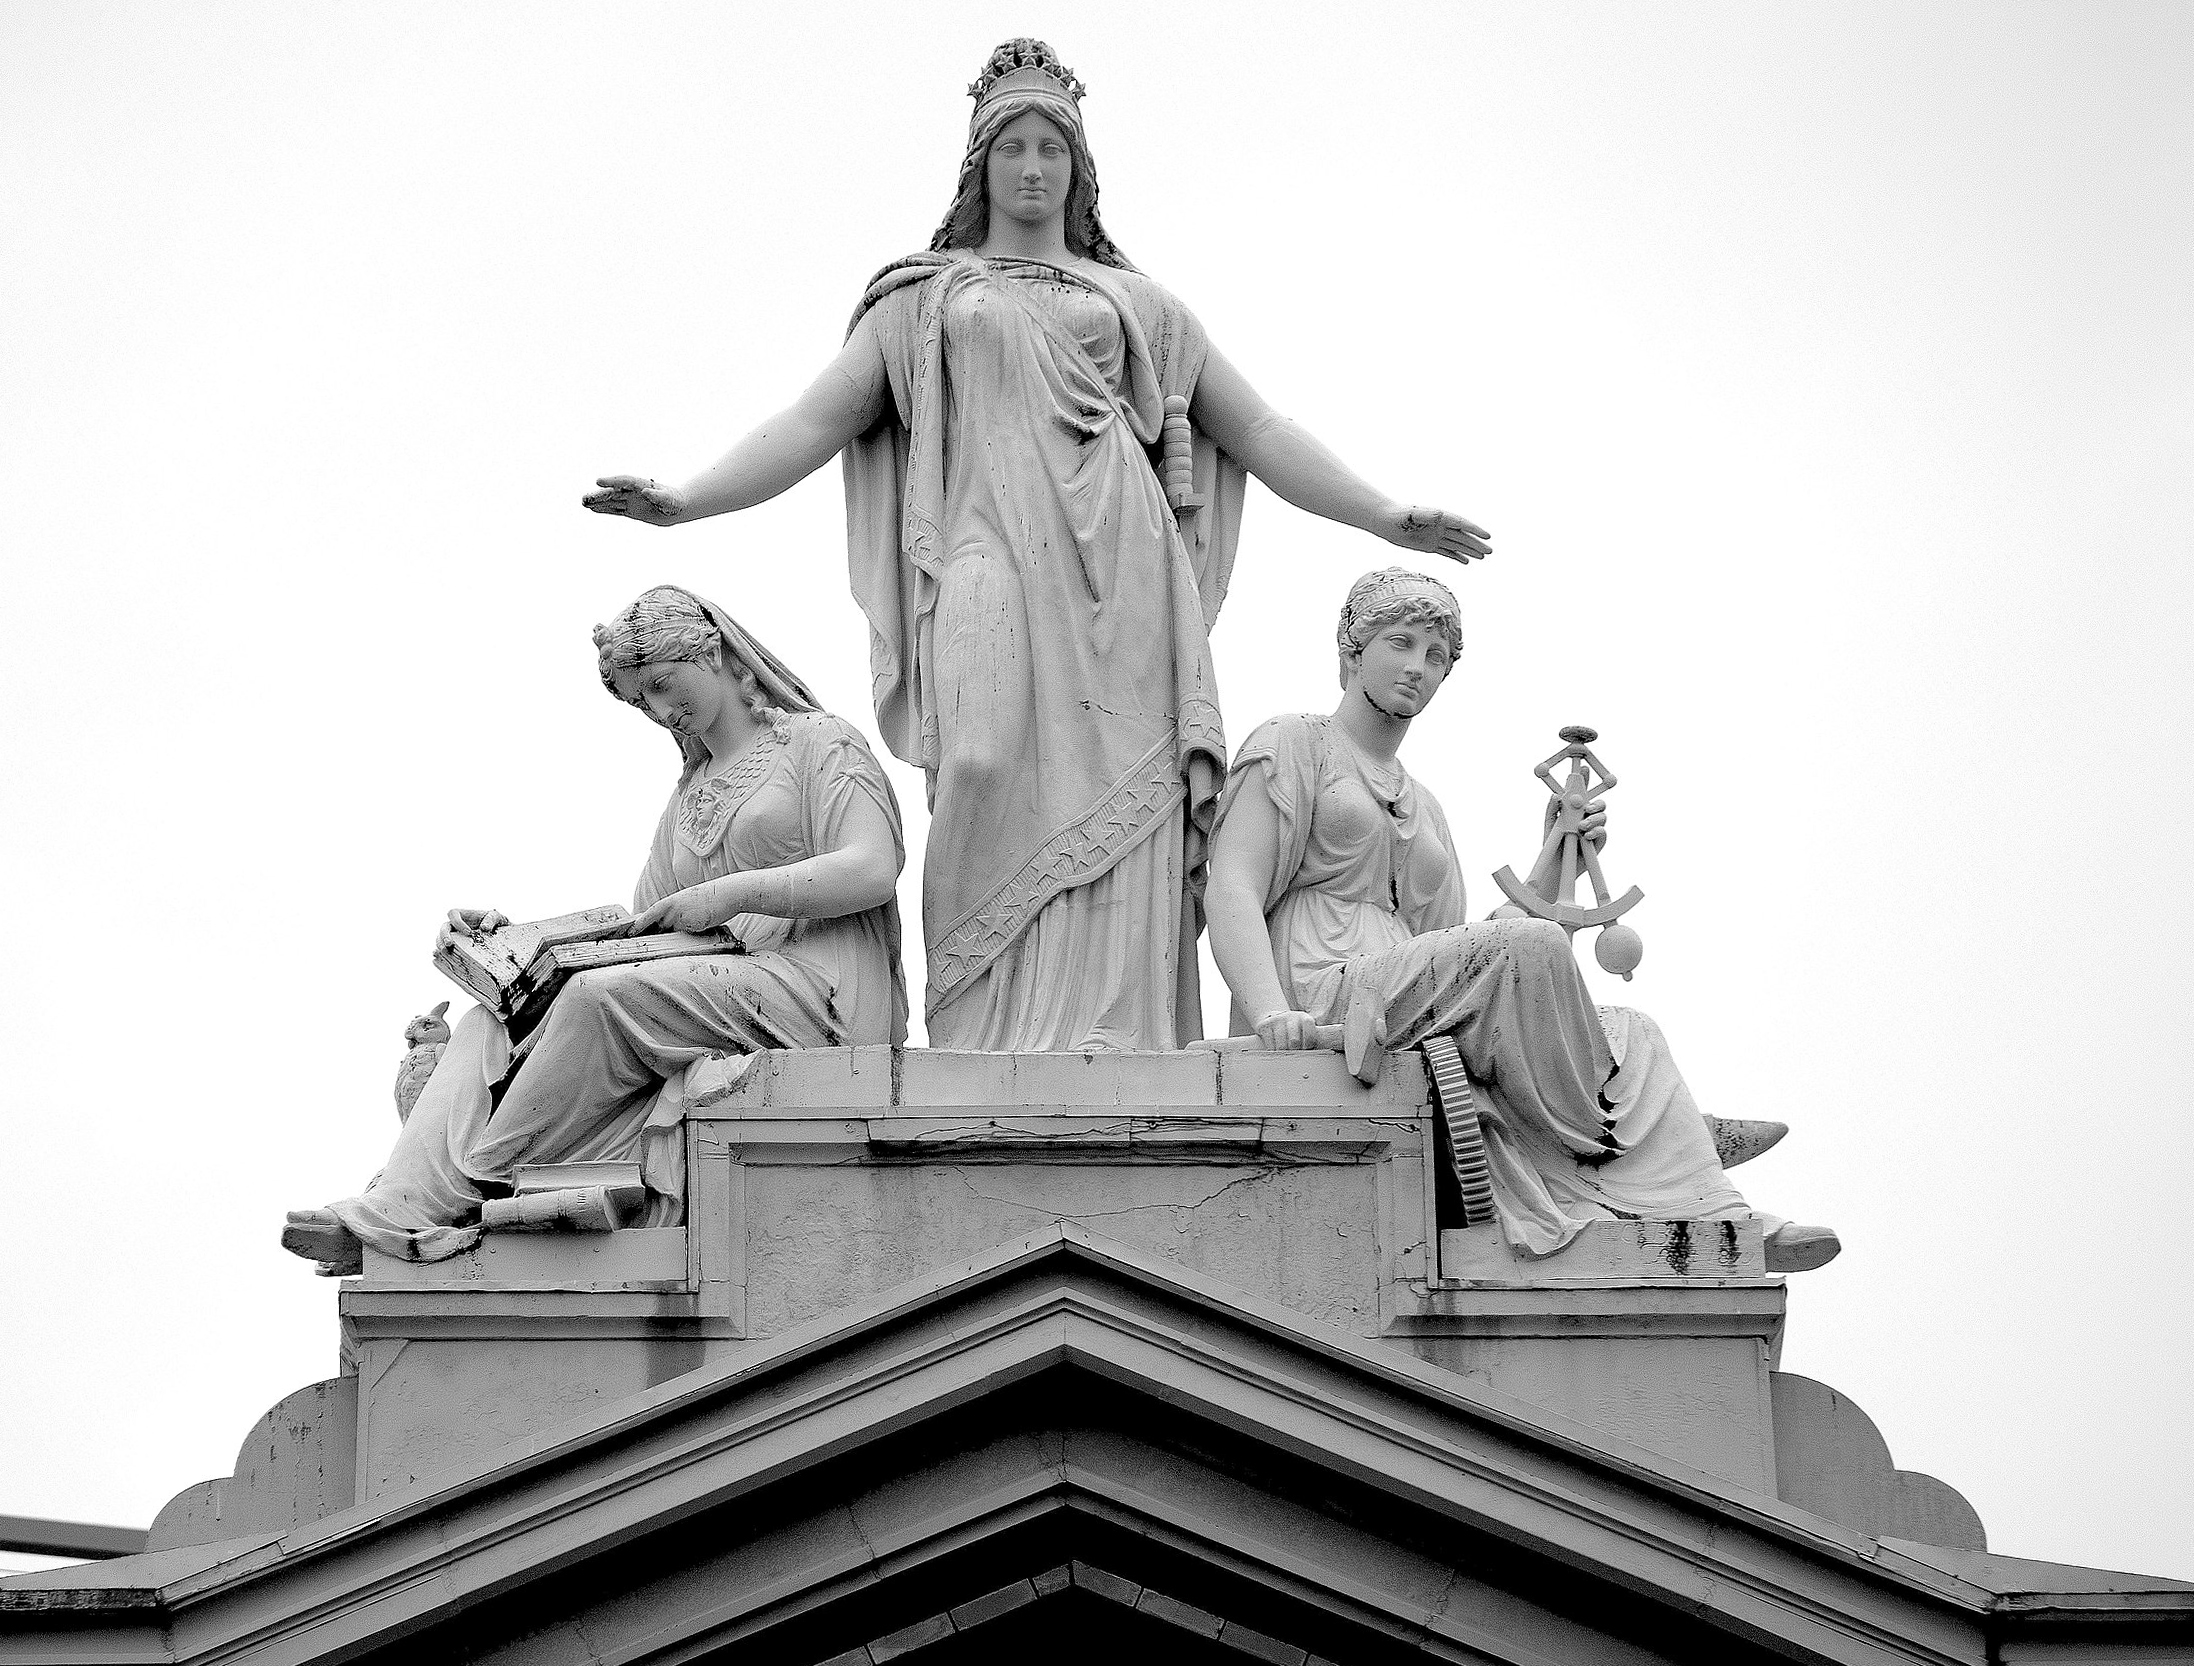 The statue atop the Arts and Industries building depicts Columbia protecting Science and Industry. Photo by Jamieadams99 on Wikimedia.